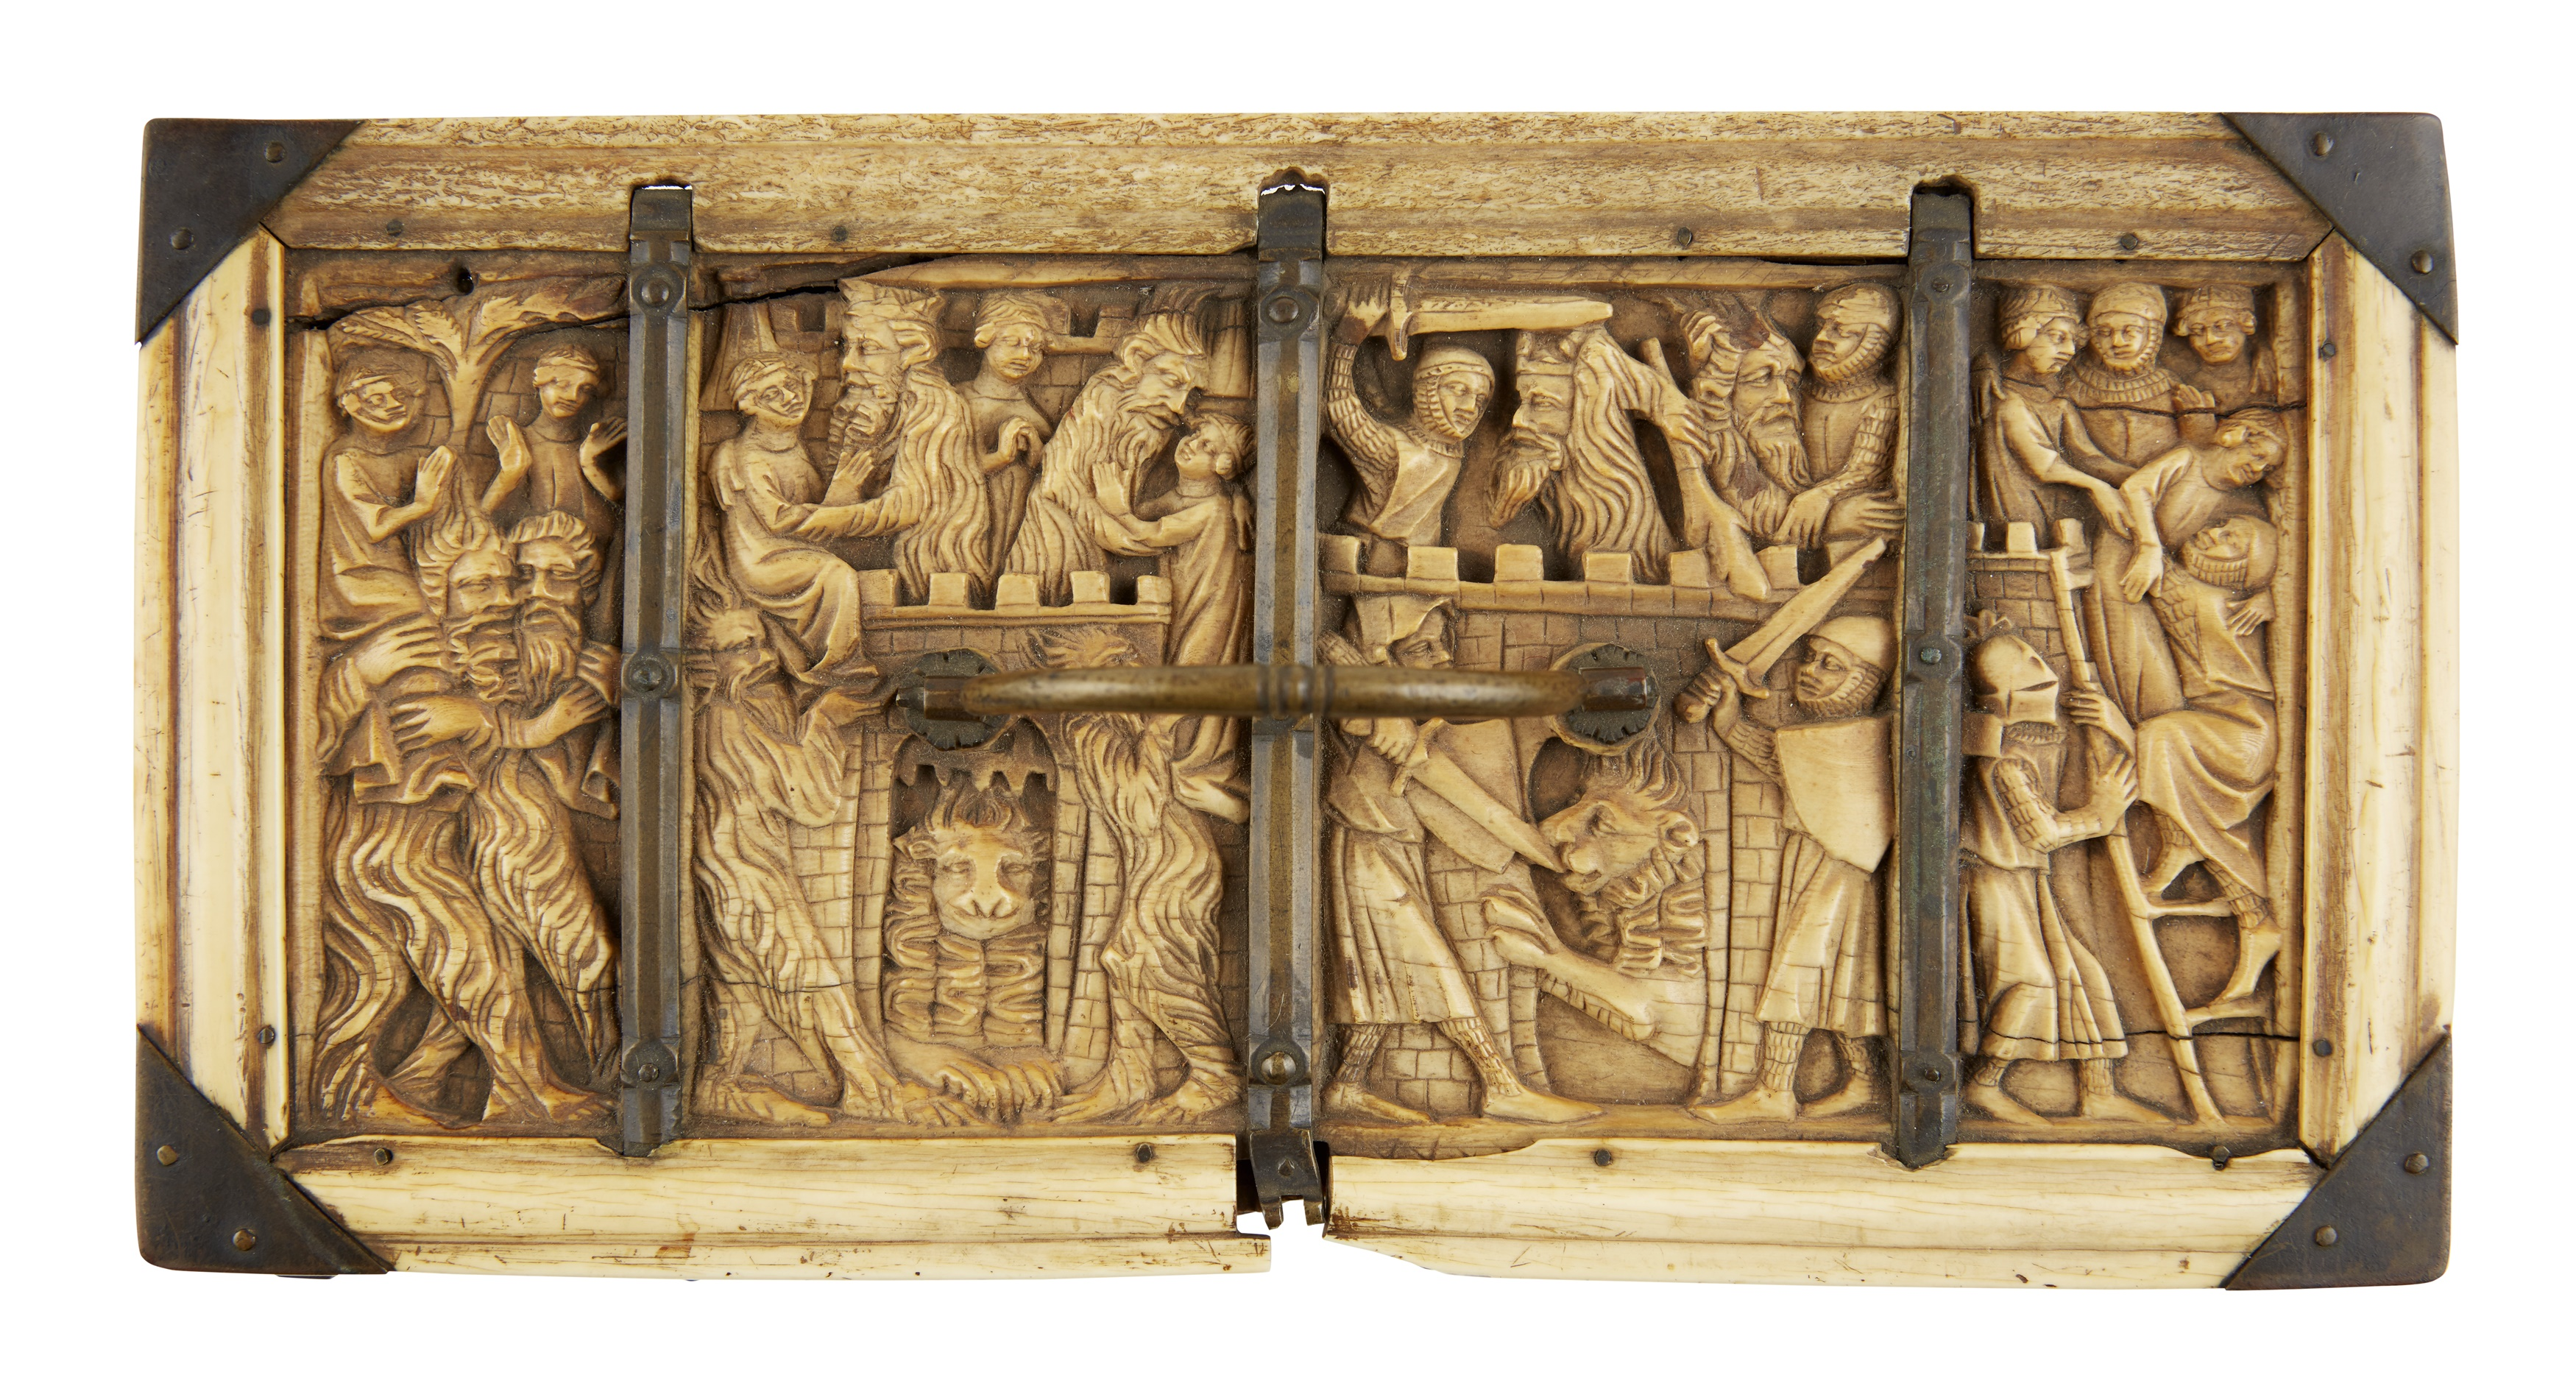 Y ◆ RARE AND IMPORTANT FRENCH GOTHIC IVORY COMPOSITE CASKET CIRCA 1330 - Image 6 of 8